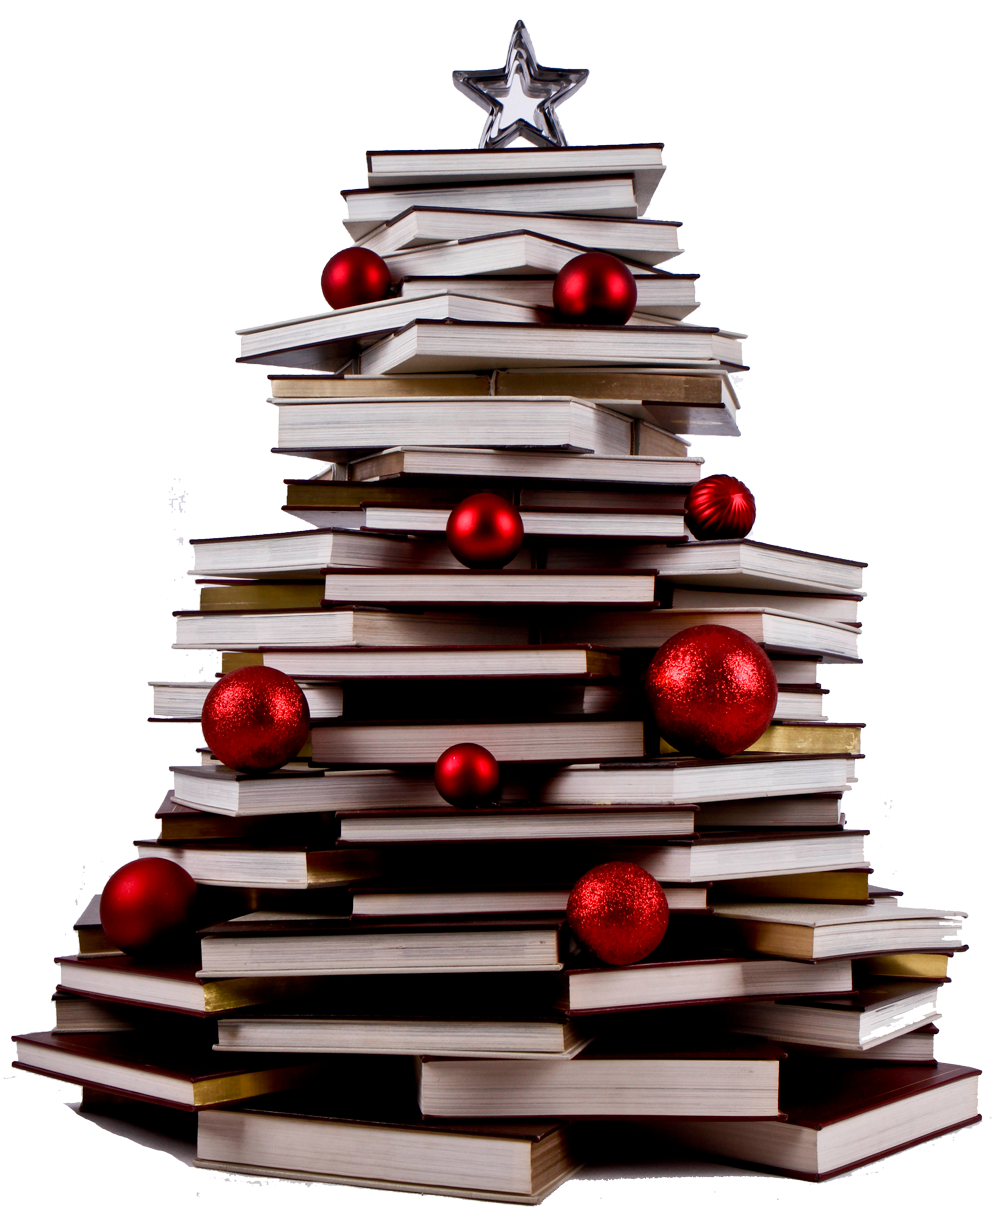 Super Bookworm Girl: Christmas Tree Of Books